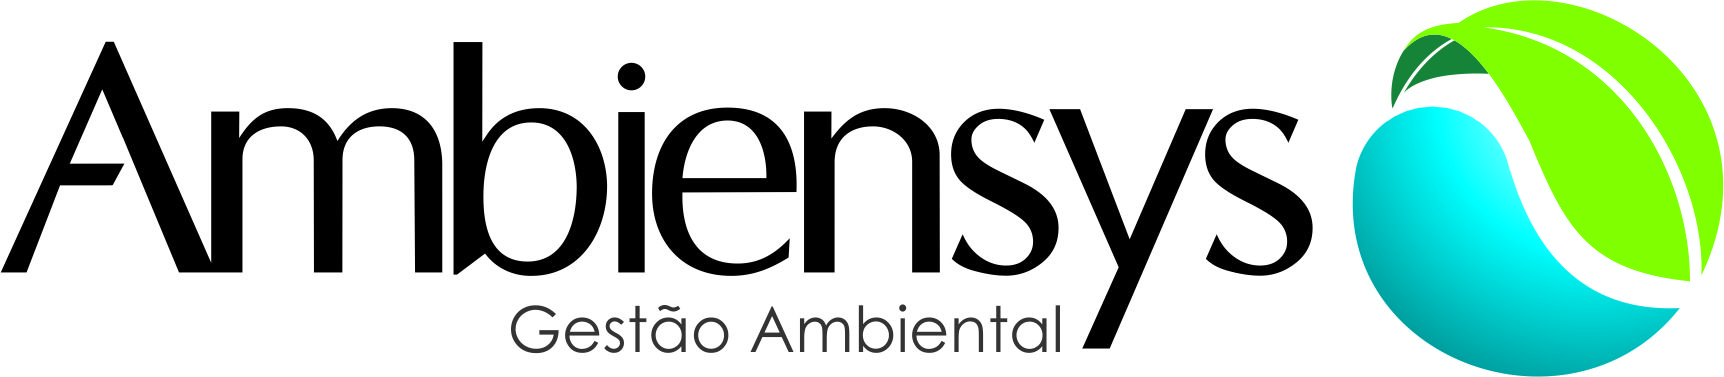 ambiensys